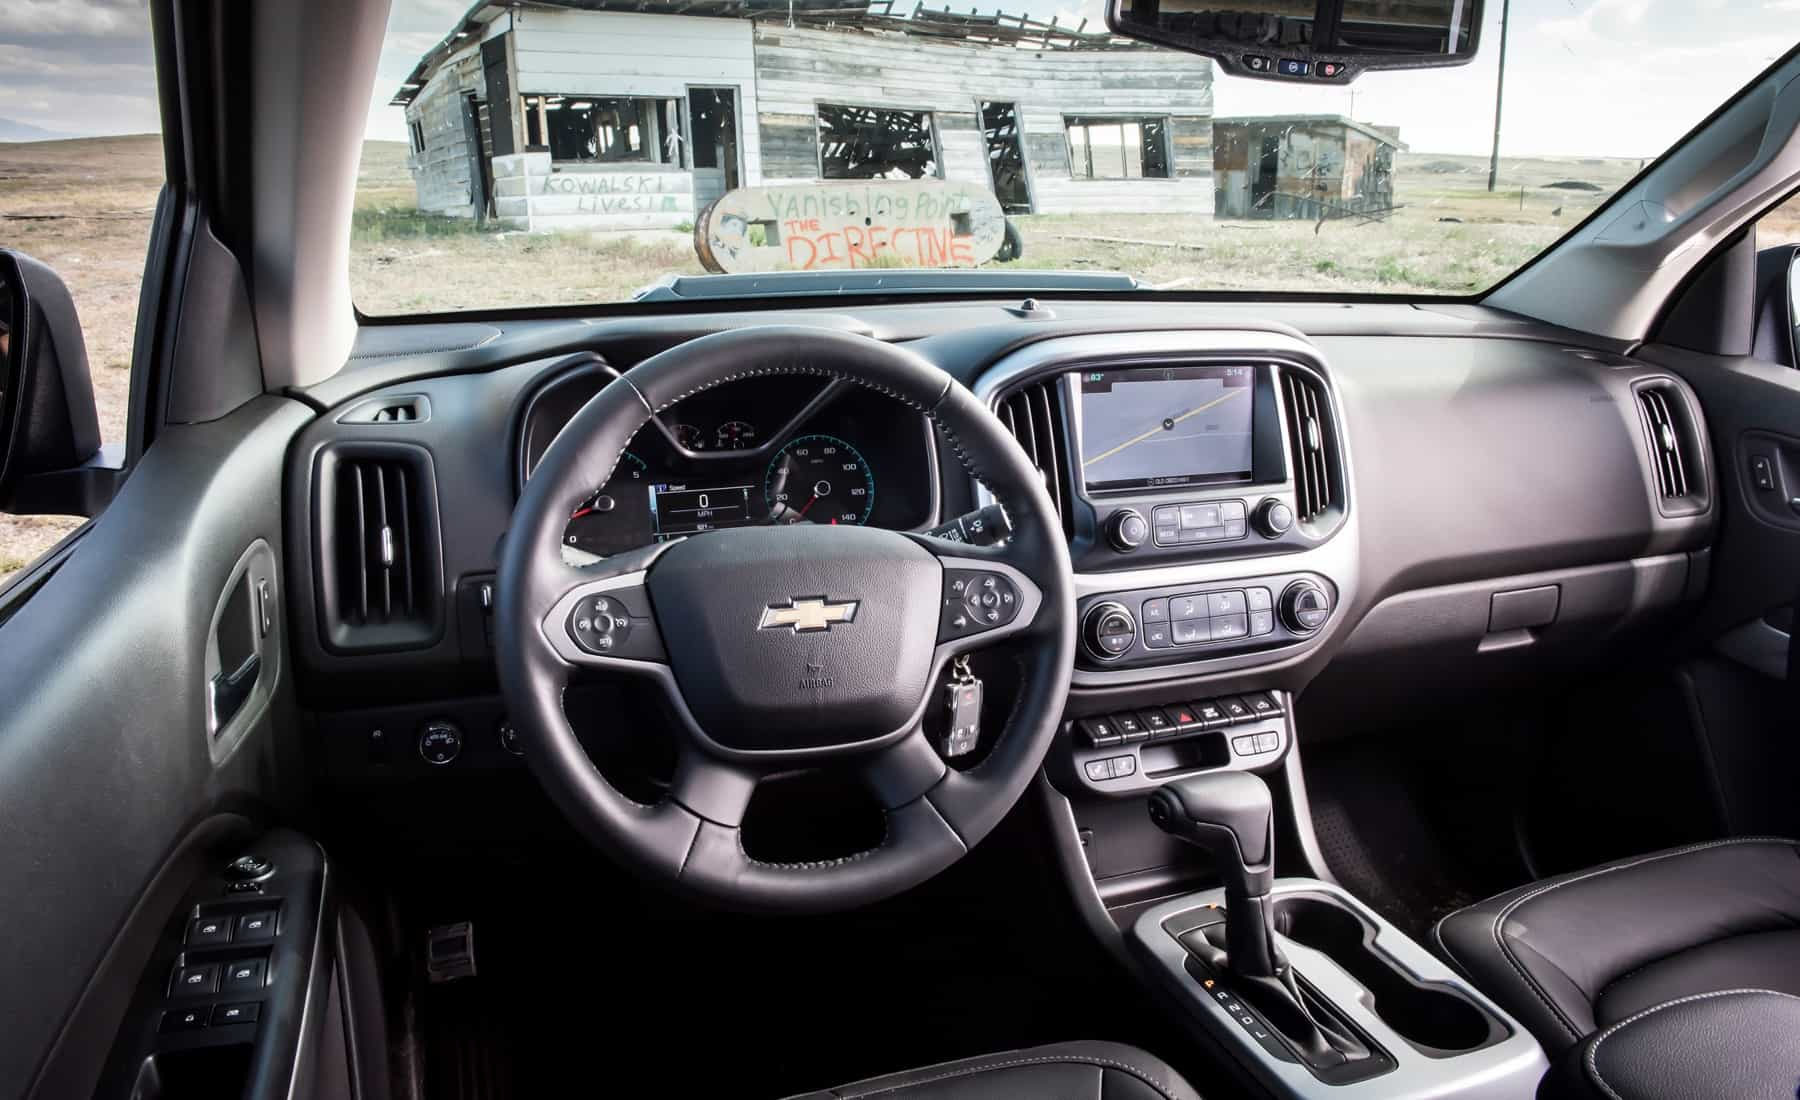 2017 Chevrolet Colorado ZR2 Crew Cab Diesel Interior Cockpit And Dashboard (View 14 of 16)